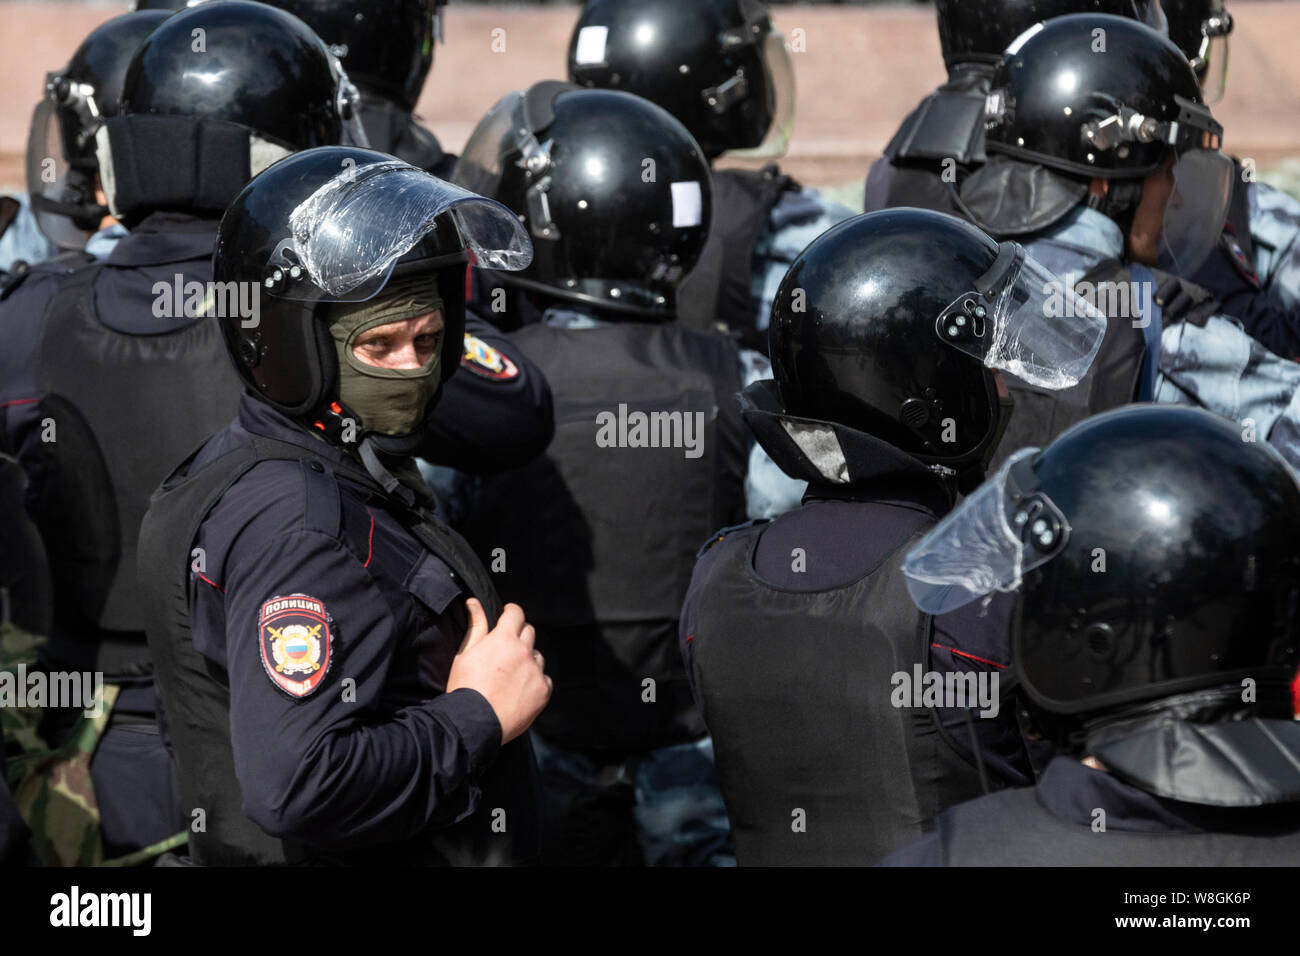 Russian Police Equipment Stock Photos & Russian Police